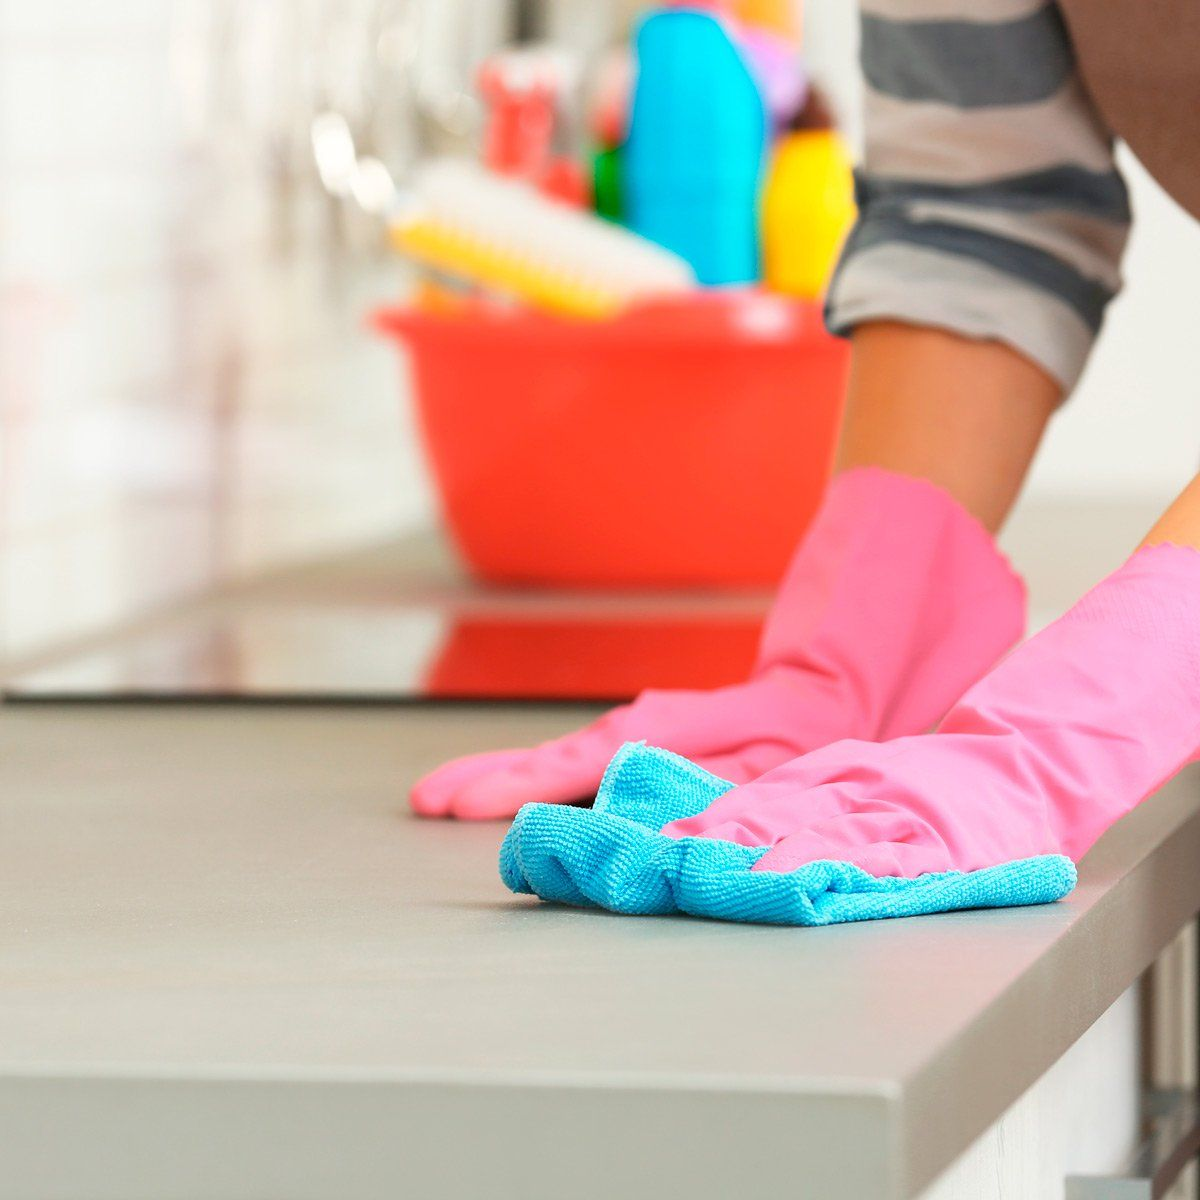 How To Clean Laminate Countertops Laminate Countertops Formica